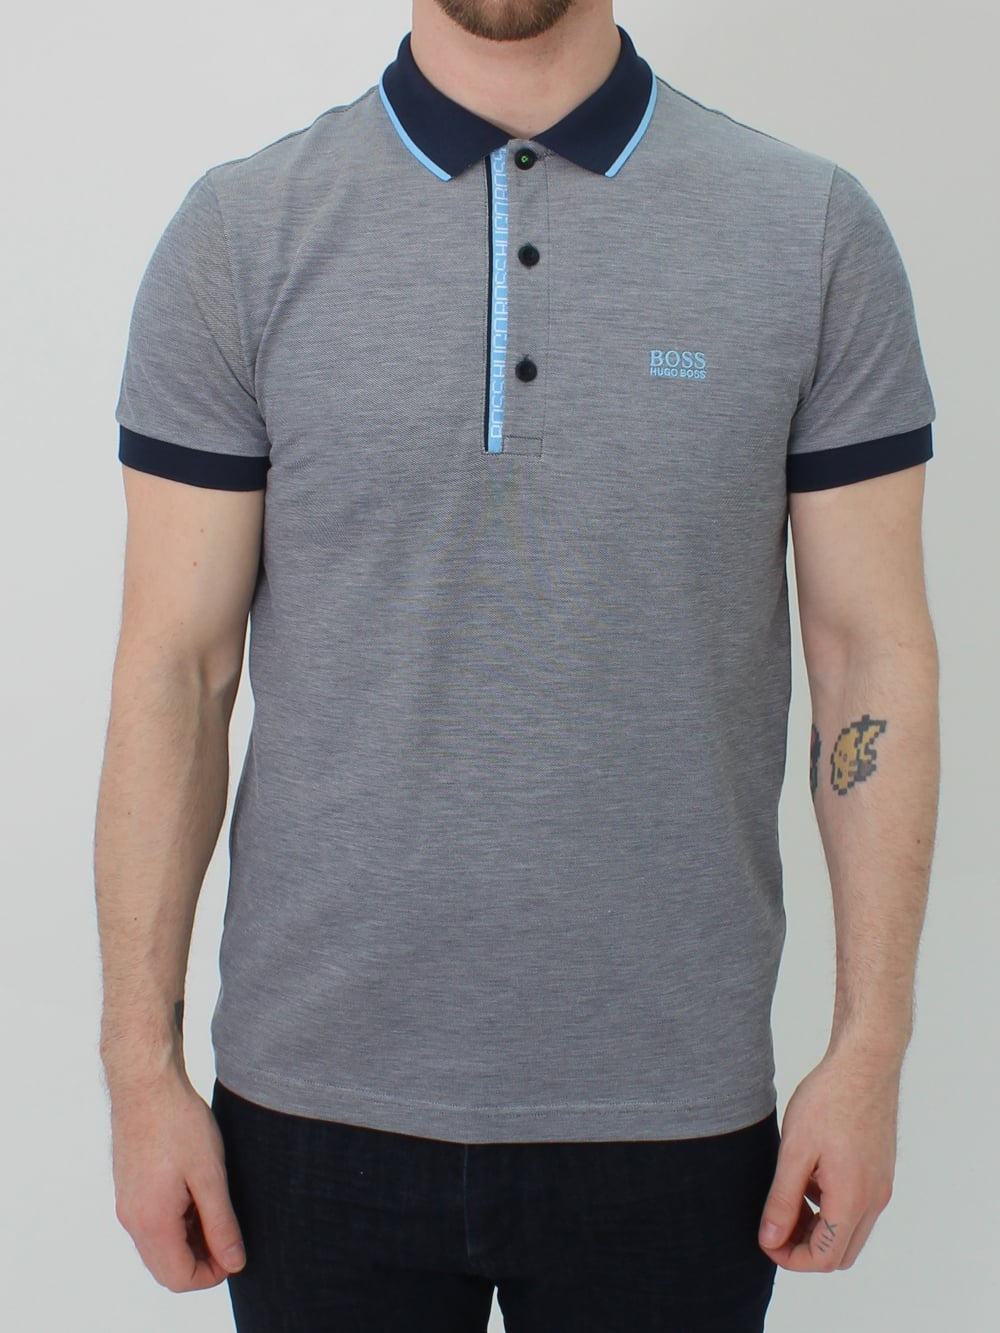 e4f3a0404 Hugo Boss Paule 4 Polo Shirt - DREAMWORKS